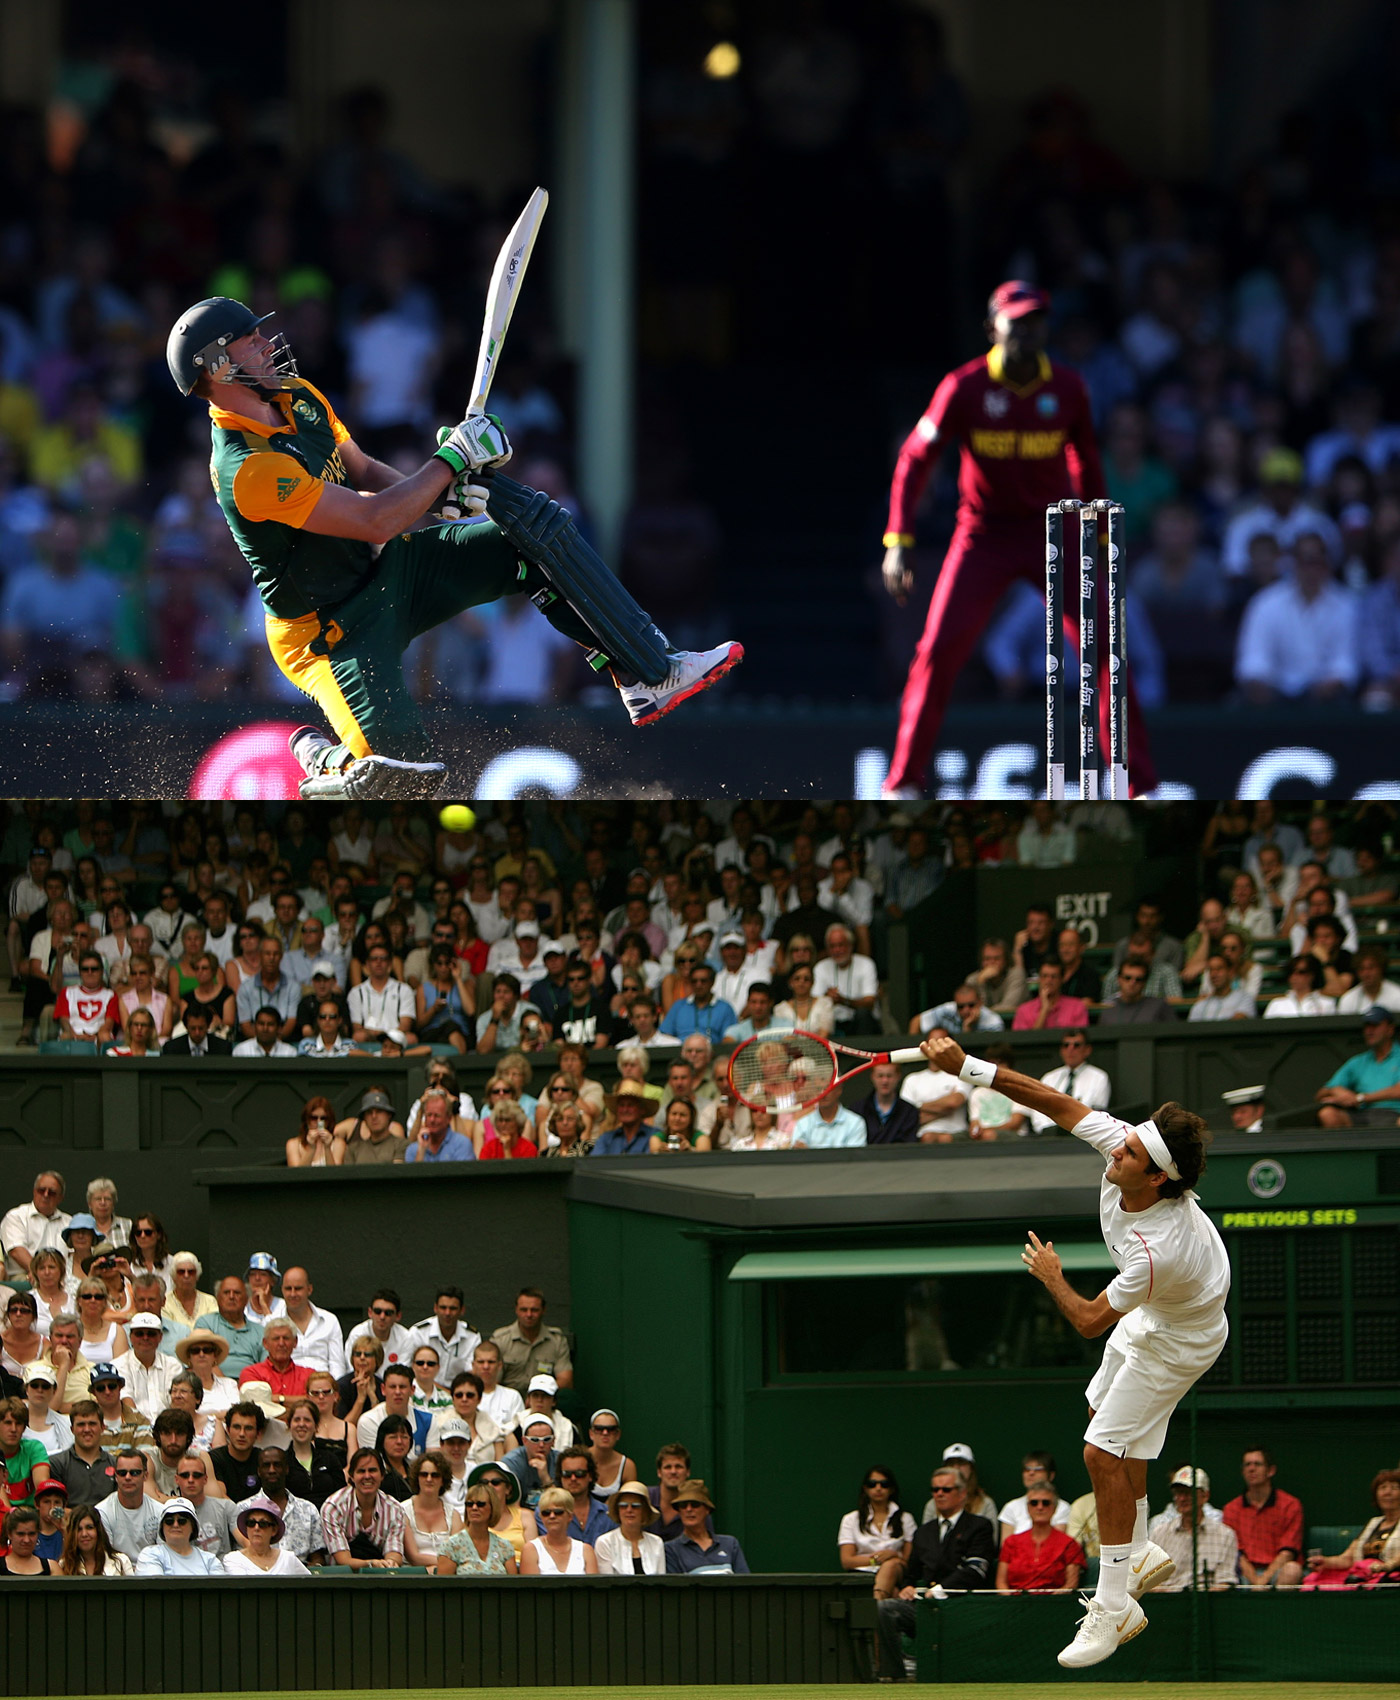 The backhand and the forehand: cricketers with multi-sport childhoods are blurring the lines between cricket and other games